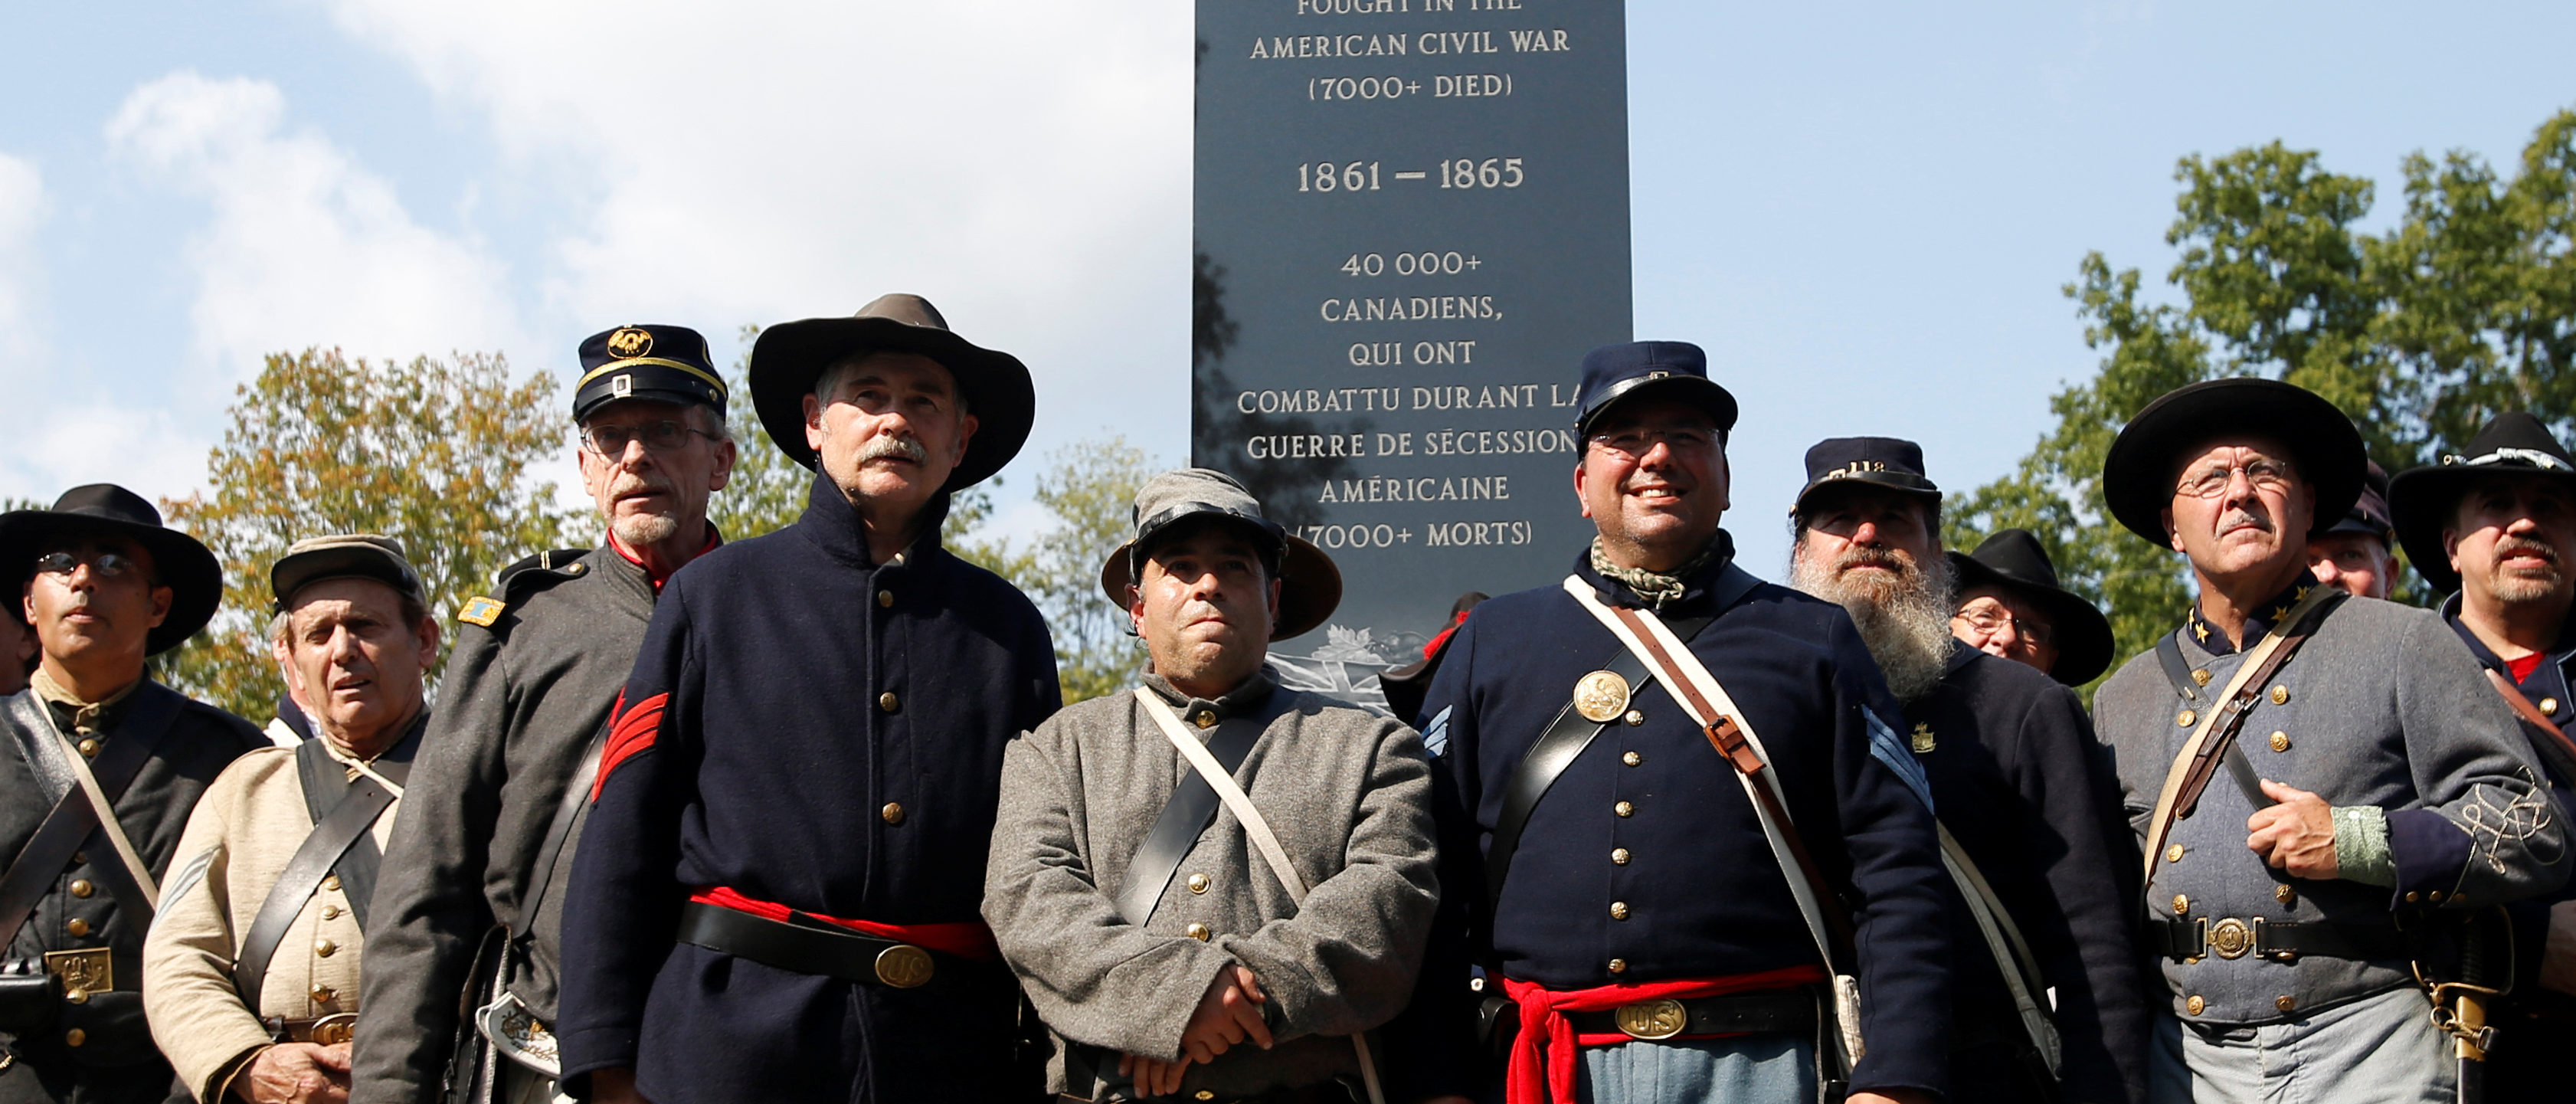 Re-enactors pose for a group photo in front of a monument honouring Canadians who fought in the U.S. Civil War during a dedication ceremony at Ault Park in Long Sault, Ontario, Canada, September 16, 2017. REUTERS/Chris Wattie - RC181C63C540